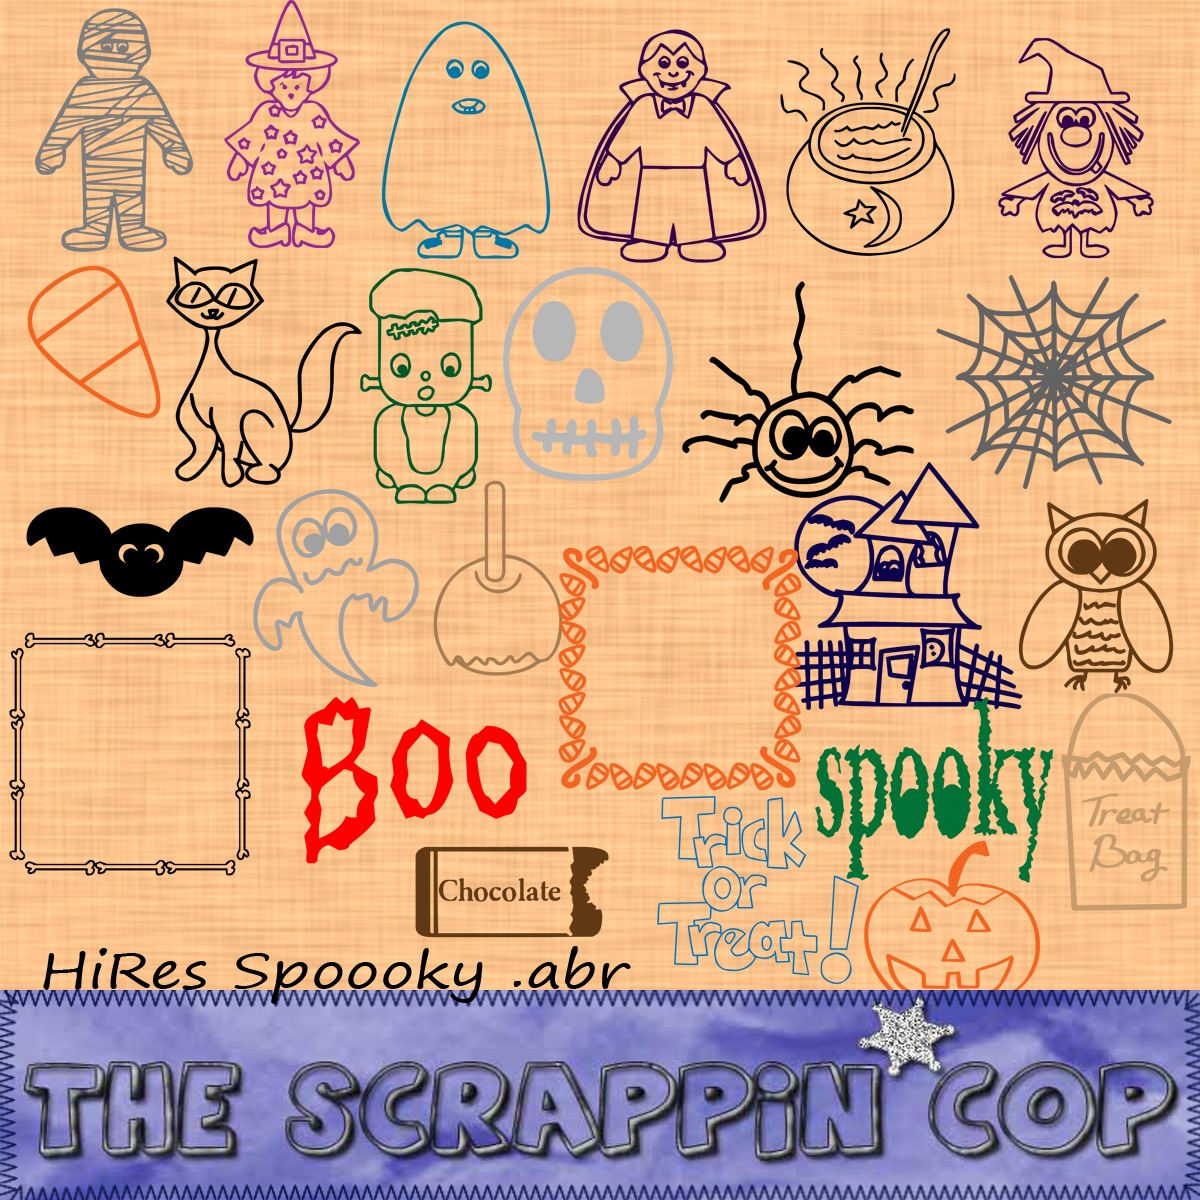 Spoooky Brushes by ScrappinCop